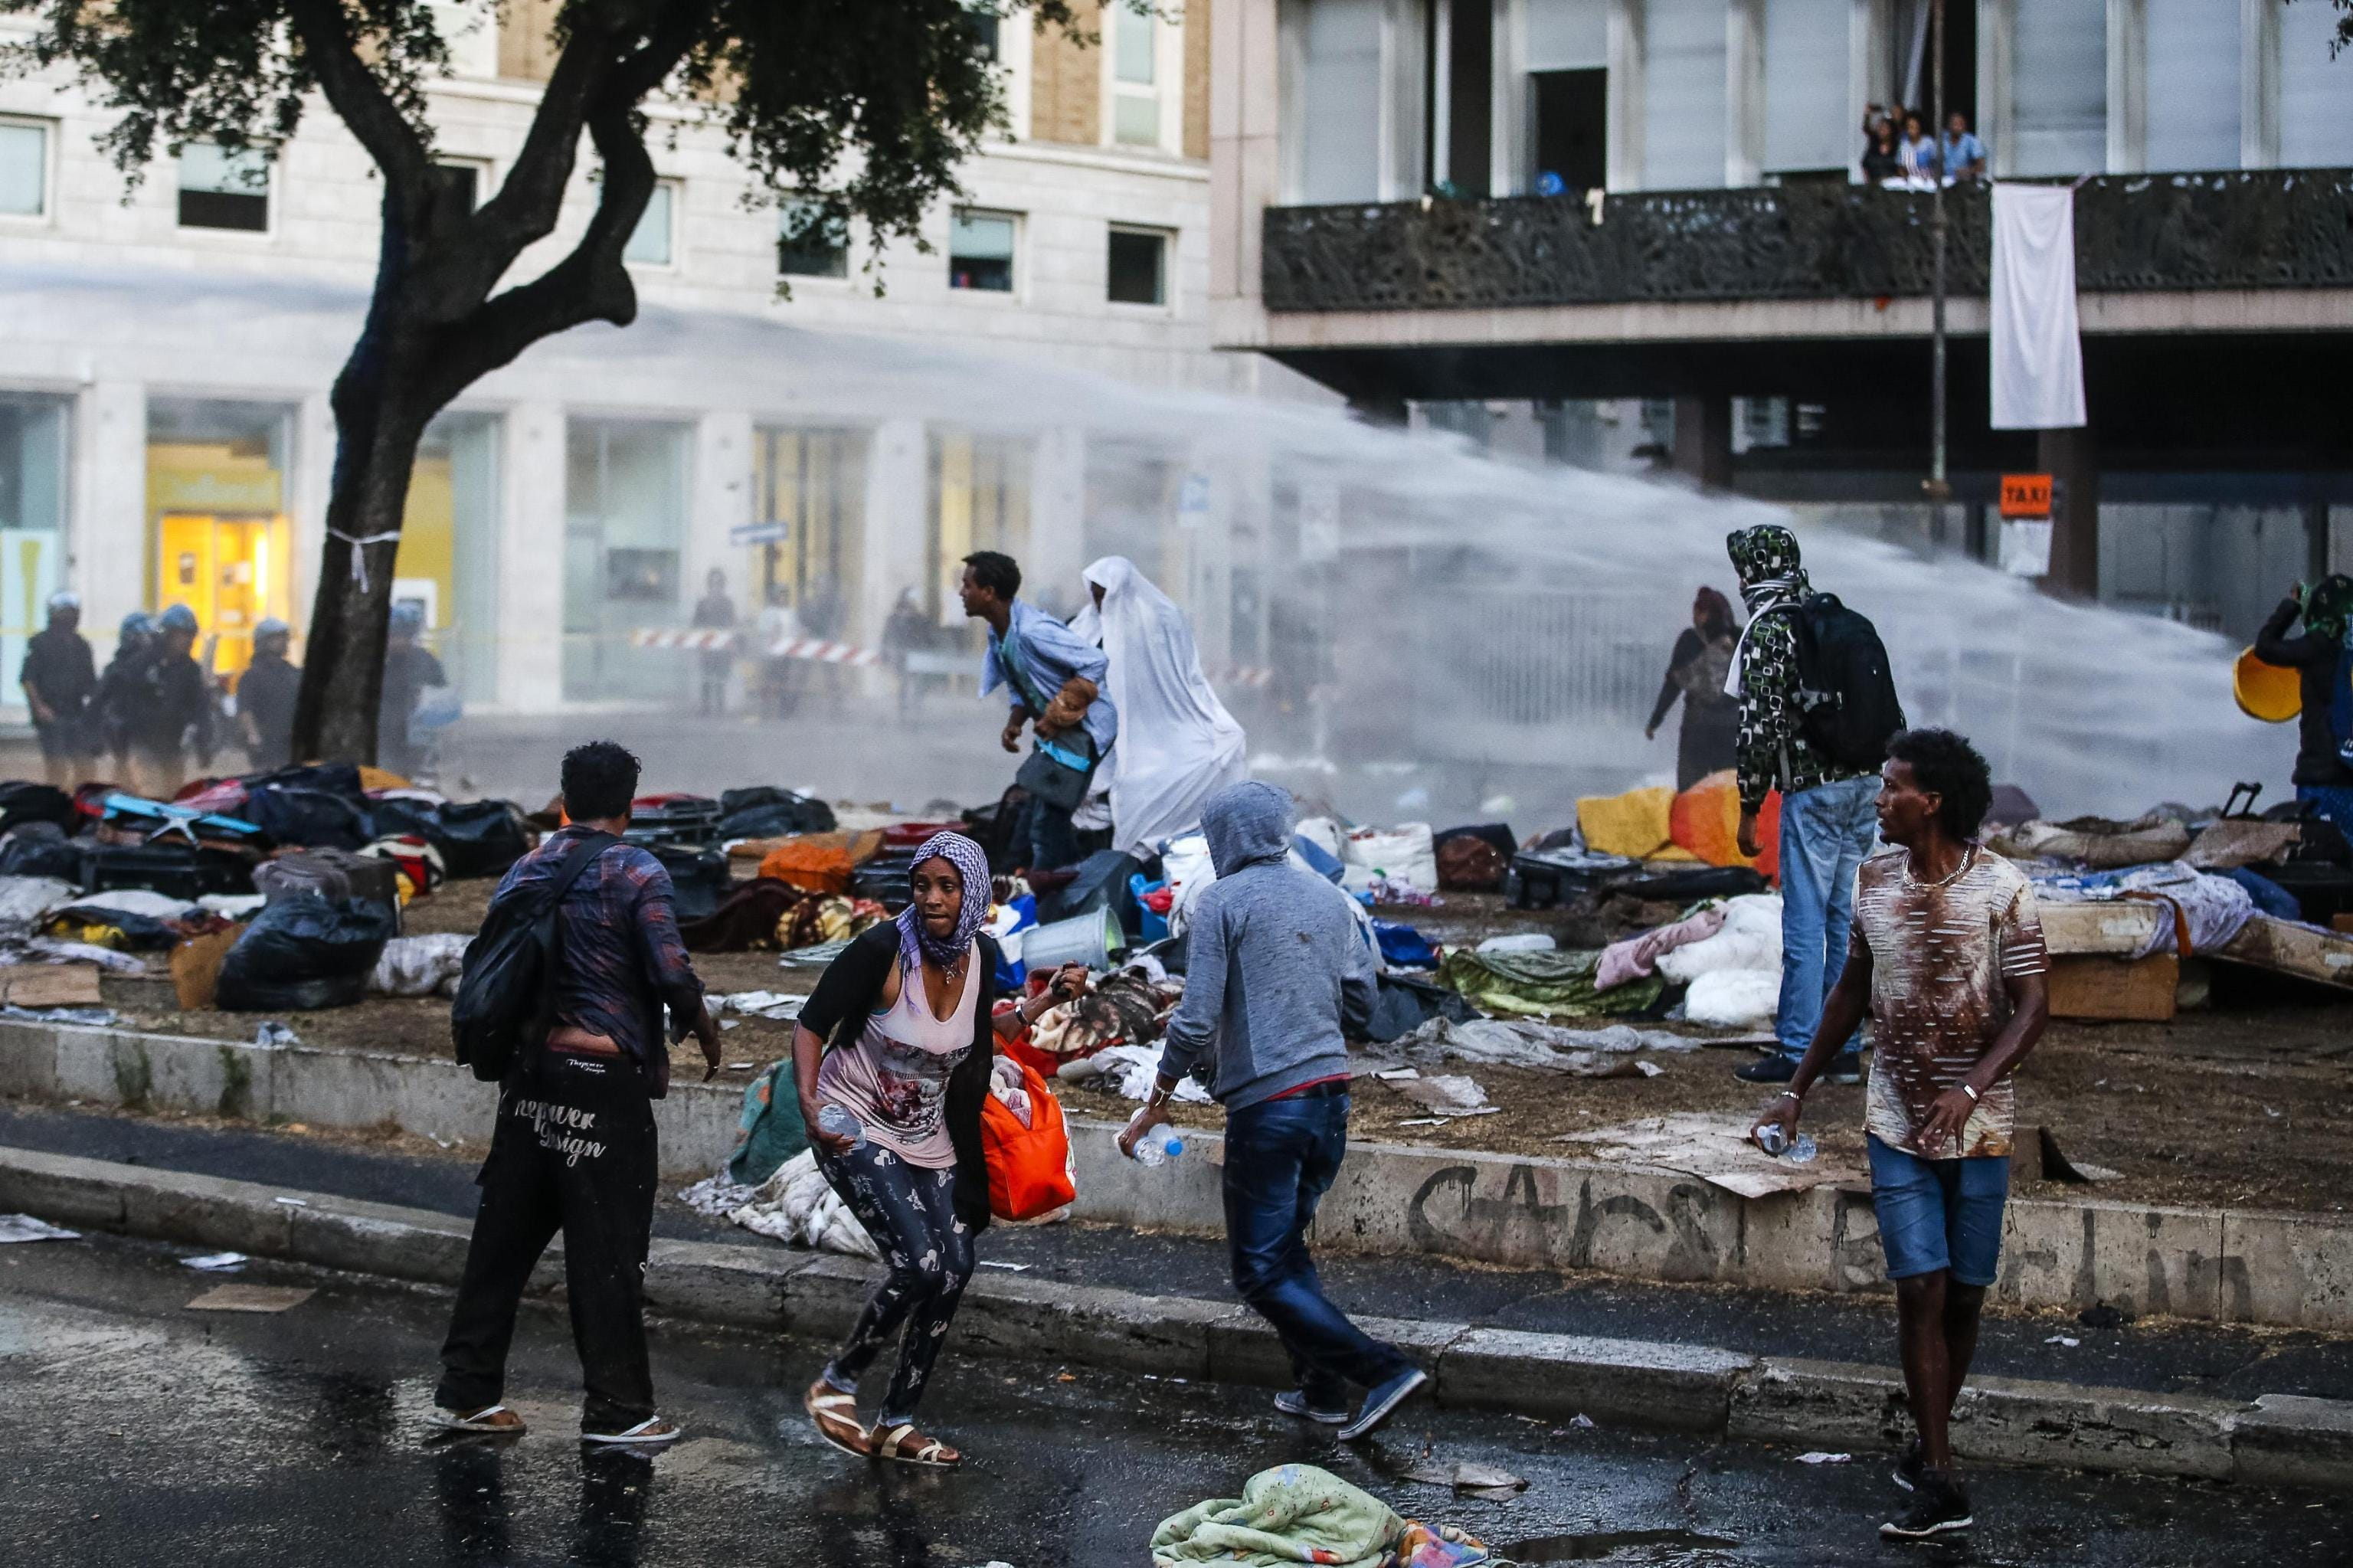 Police clear migrants from Rome piazza with water hoses